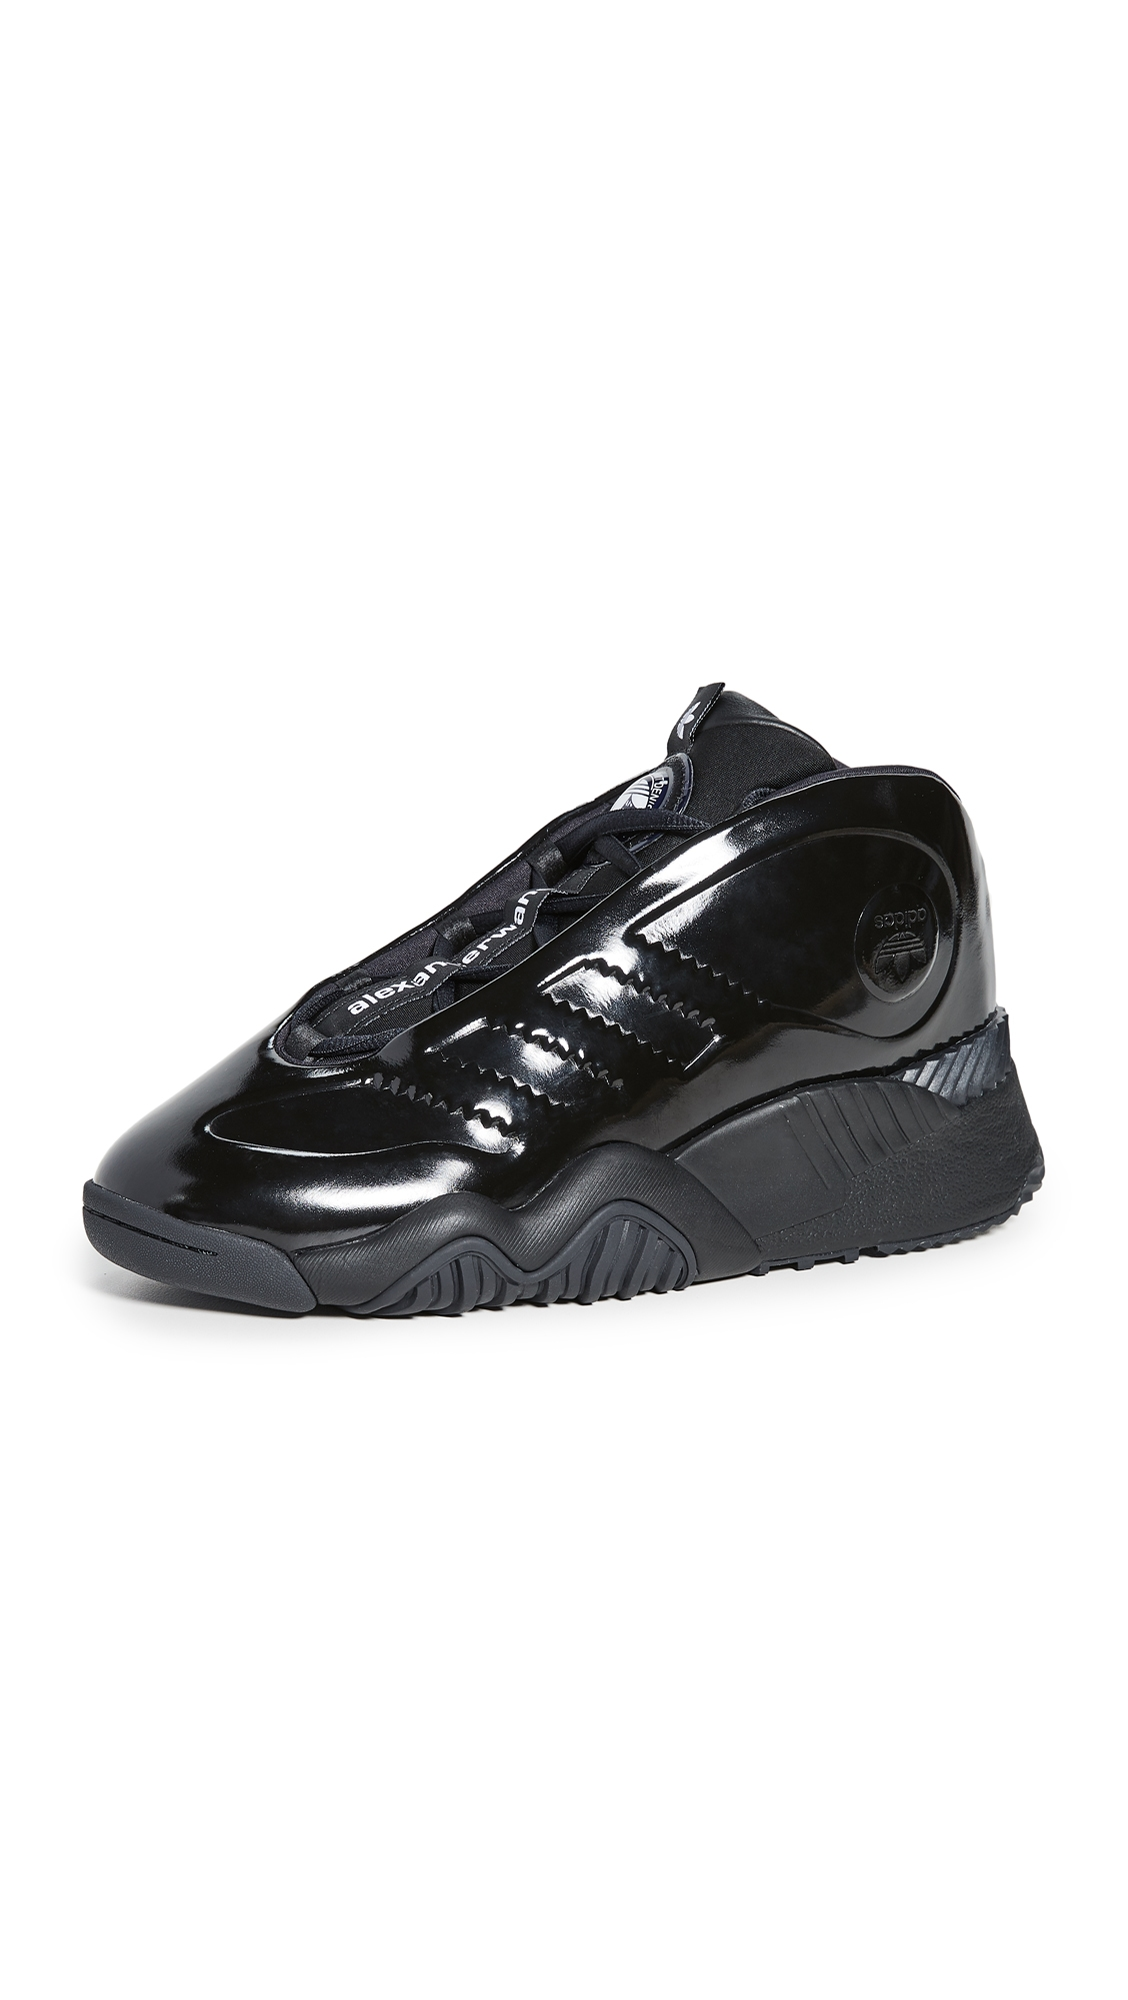 Adidas Originals By Alexander Wang Sneakers Futureshell Sneakers